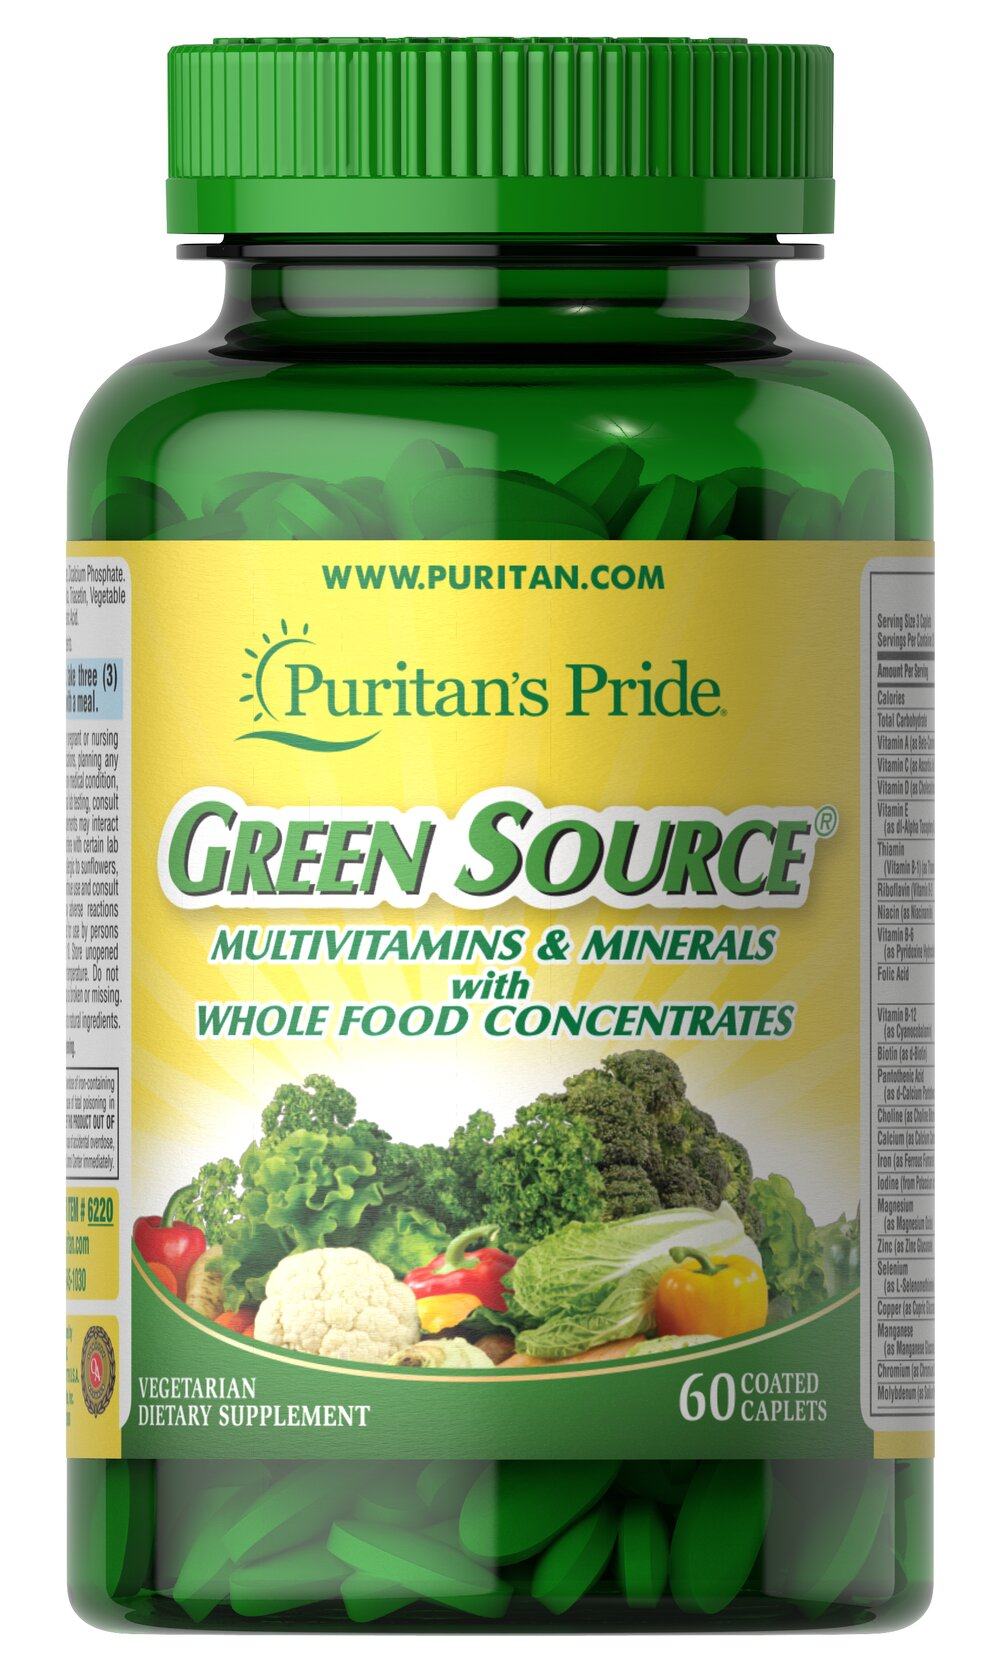 Green Source® Multivitamin & Minerals <p>This concentrated formula contains potent food source nutrients to provide essential vitamins, minerals, enzymes and amino acids. It also provides all the naturally occurring active constituents of whole foods.</p> 60 Caplets  $18.49